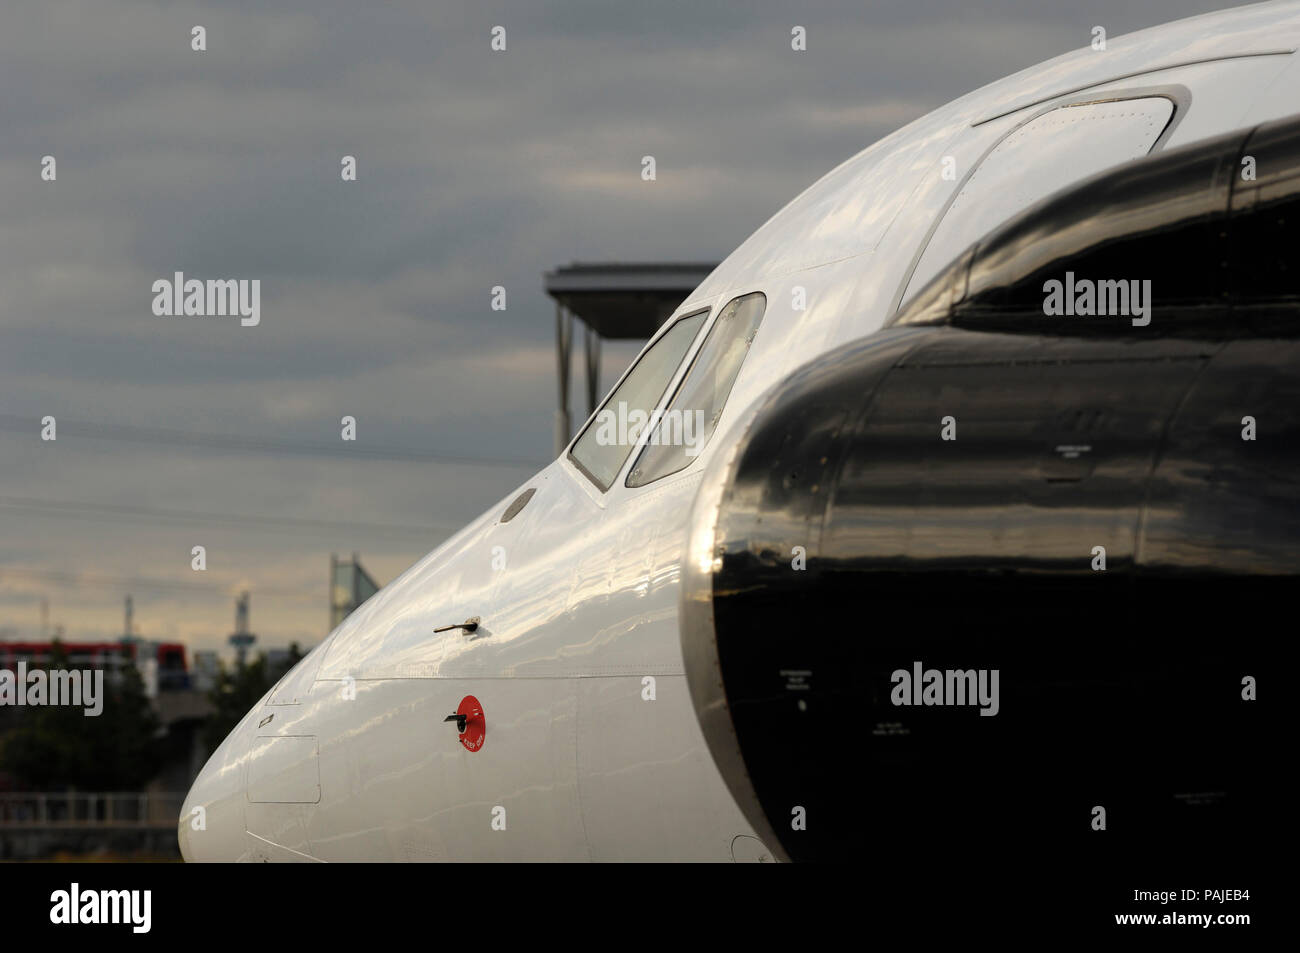 Honeywell ALF-502 engine-cowling and nose of Titan Airways BAE 146-200 QC taxiing at London City - Stock Image